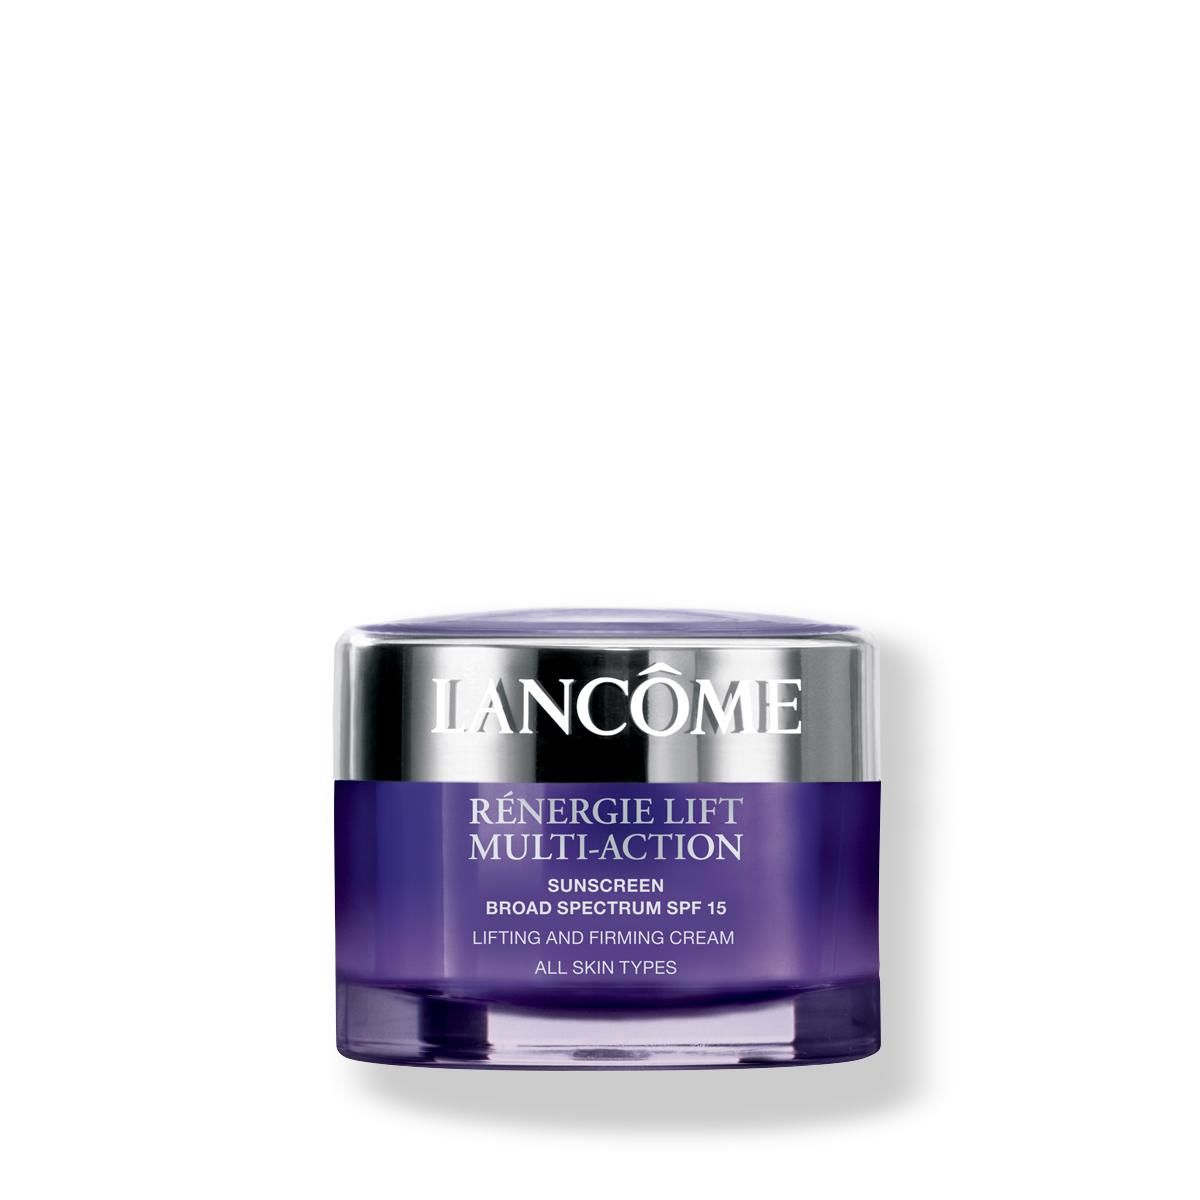 Lancôme R nergie Lift Multi-Action